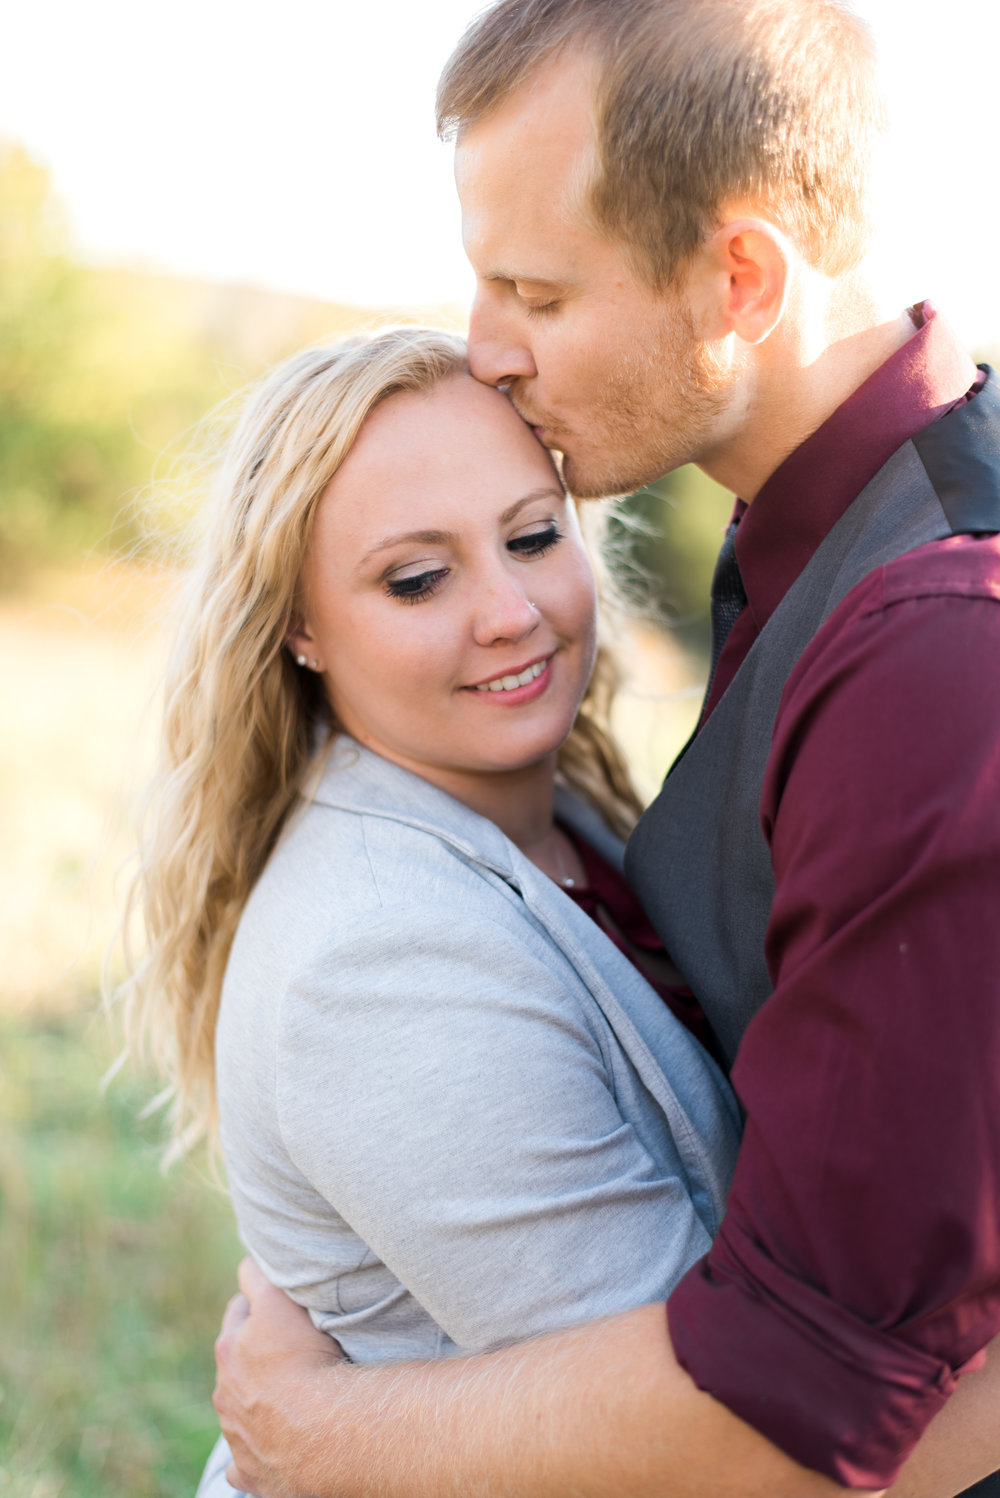 Lynchburg_College_Sorella_Farms_Baseball_Ballet_Virginia_Engagement_Session_Wedding_Photographers (54).jpg